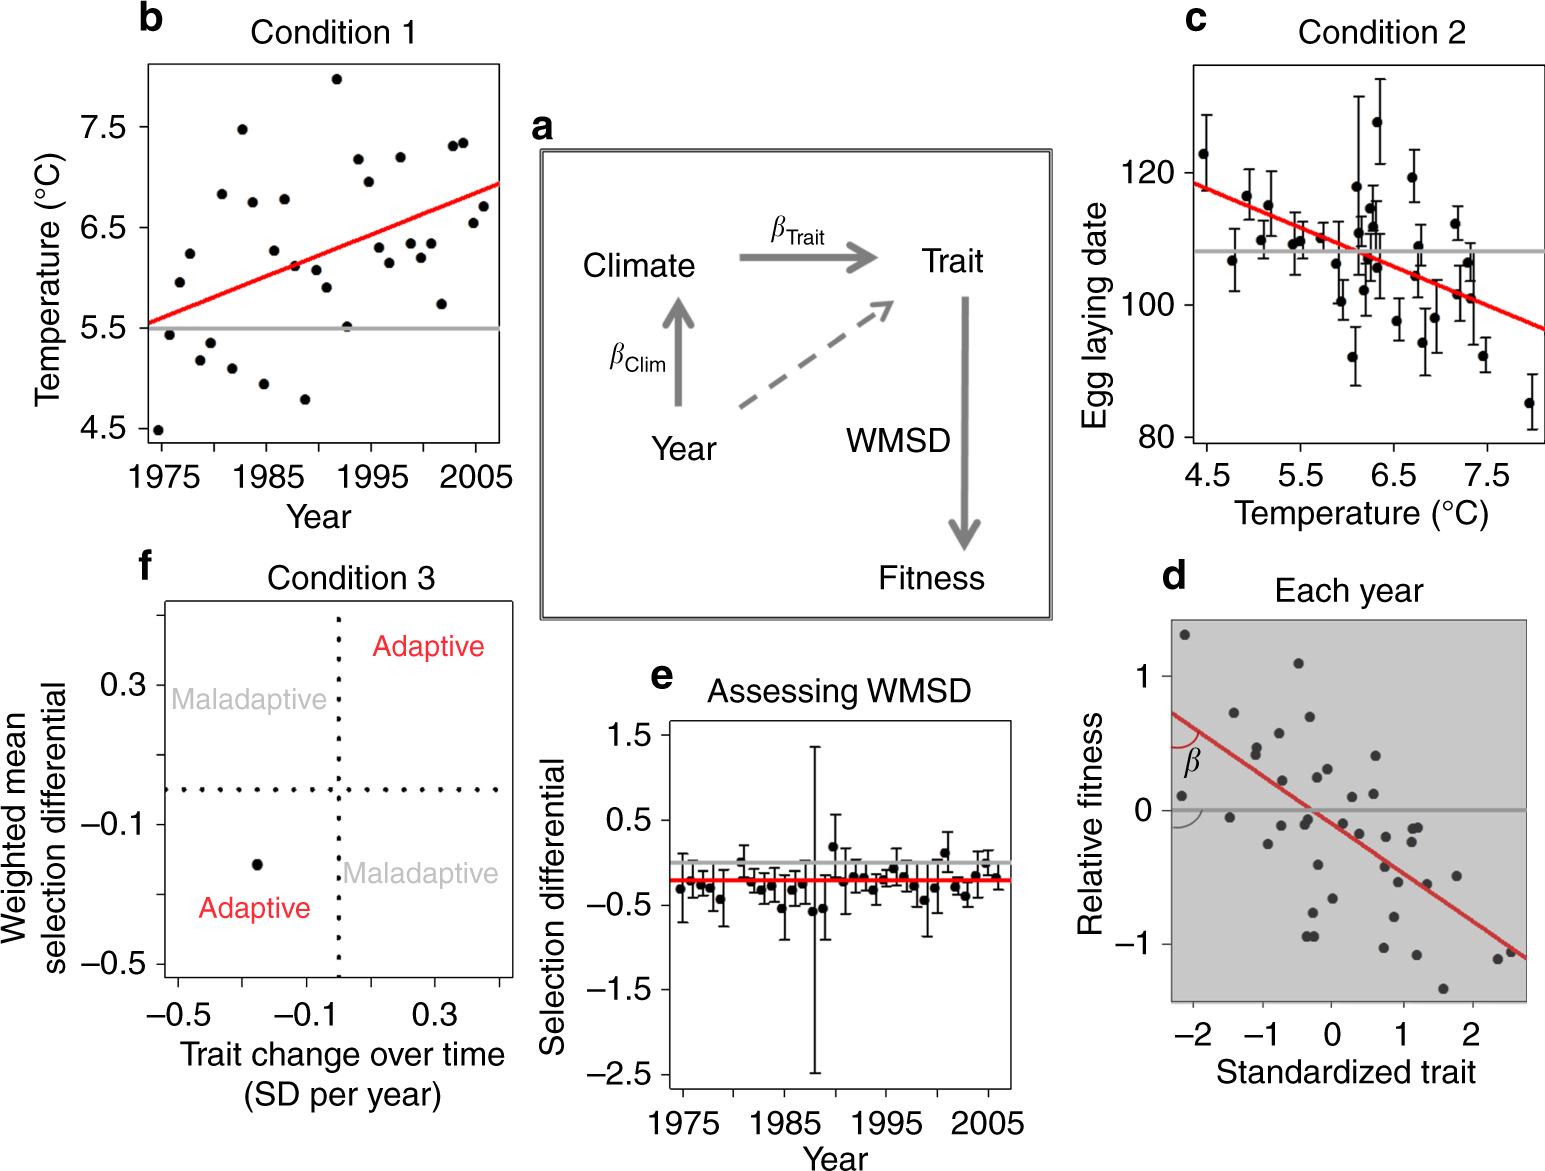 Adaptive responses of animals to climate change are most